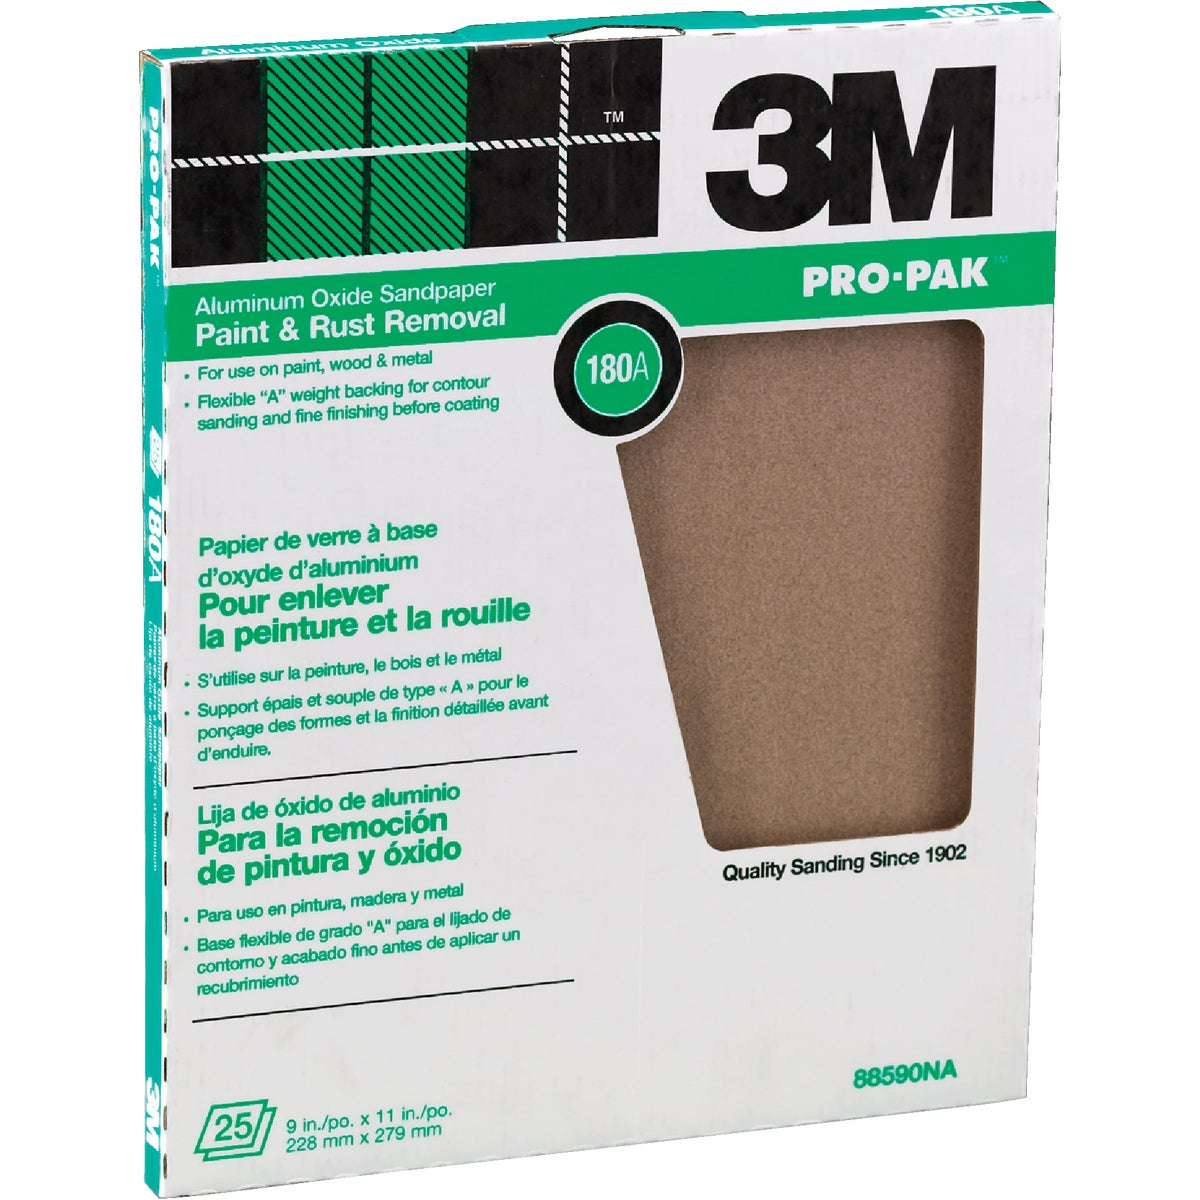 180A PRODUCTIN SANDPAPER - 88590NA by 3m Co